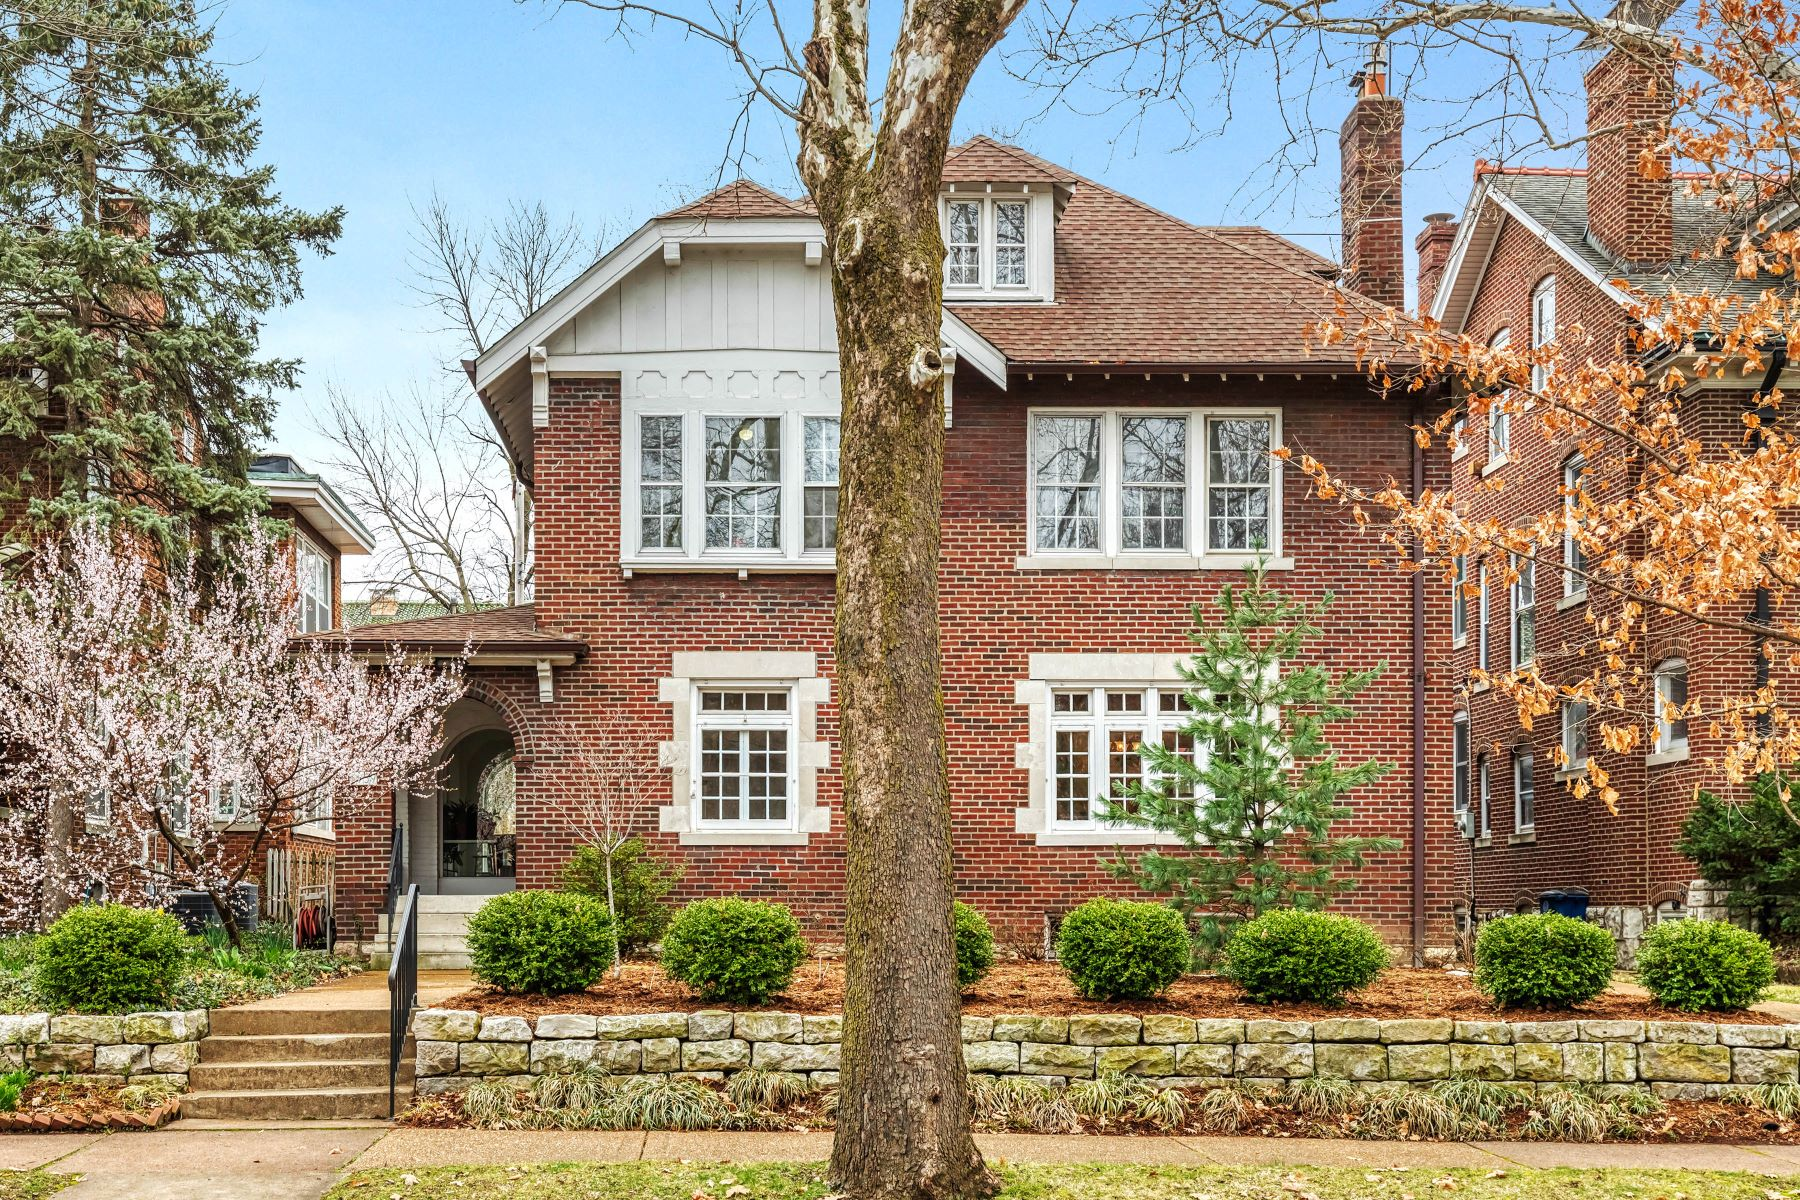 Single Family Homes for Sale at Enticing Charm of a Cotswold Cottage 6959 Waterman Avenue University City, Missouri 63130 United States